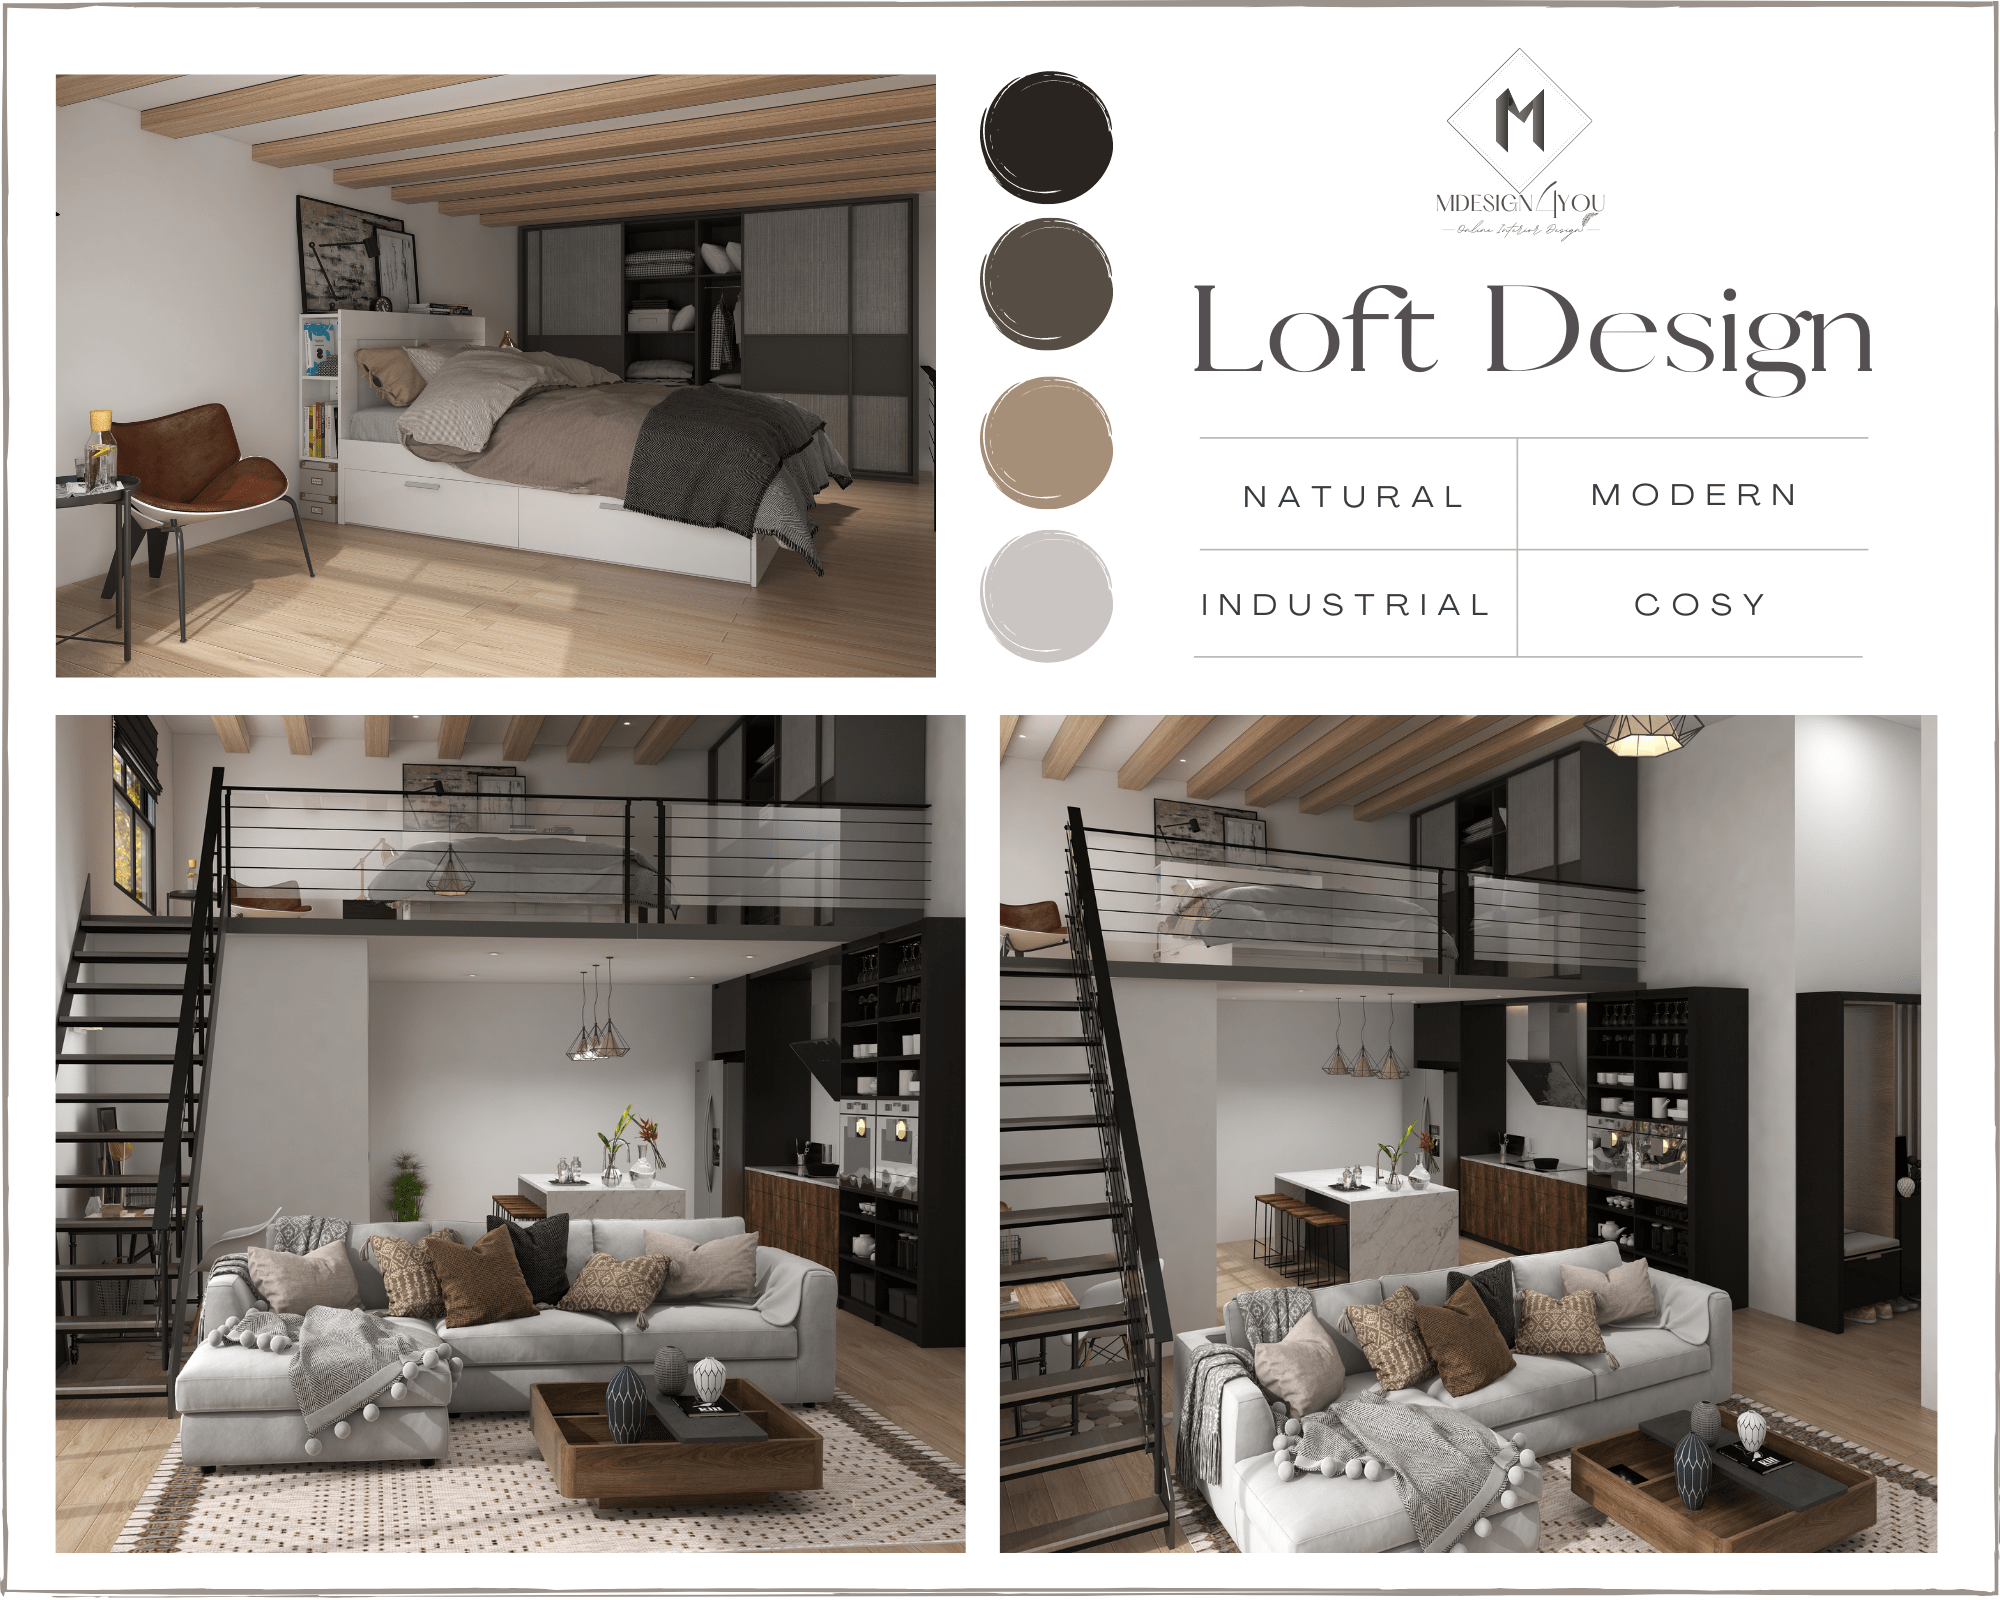 Design by MDesign4you